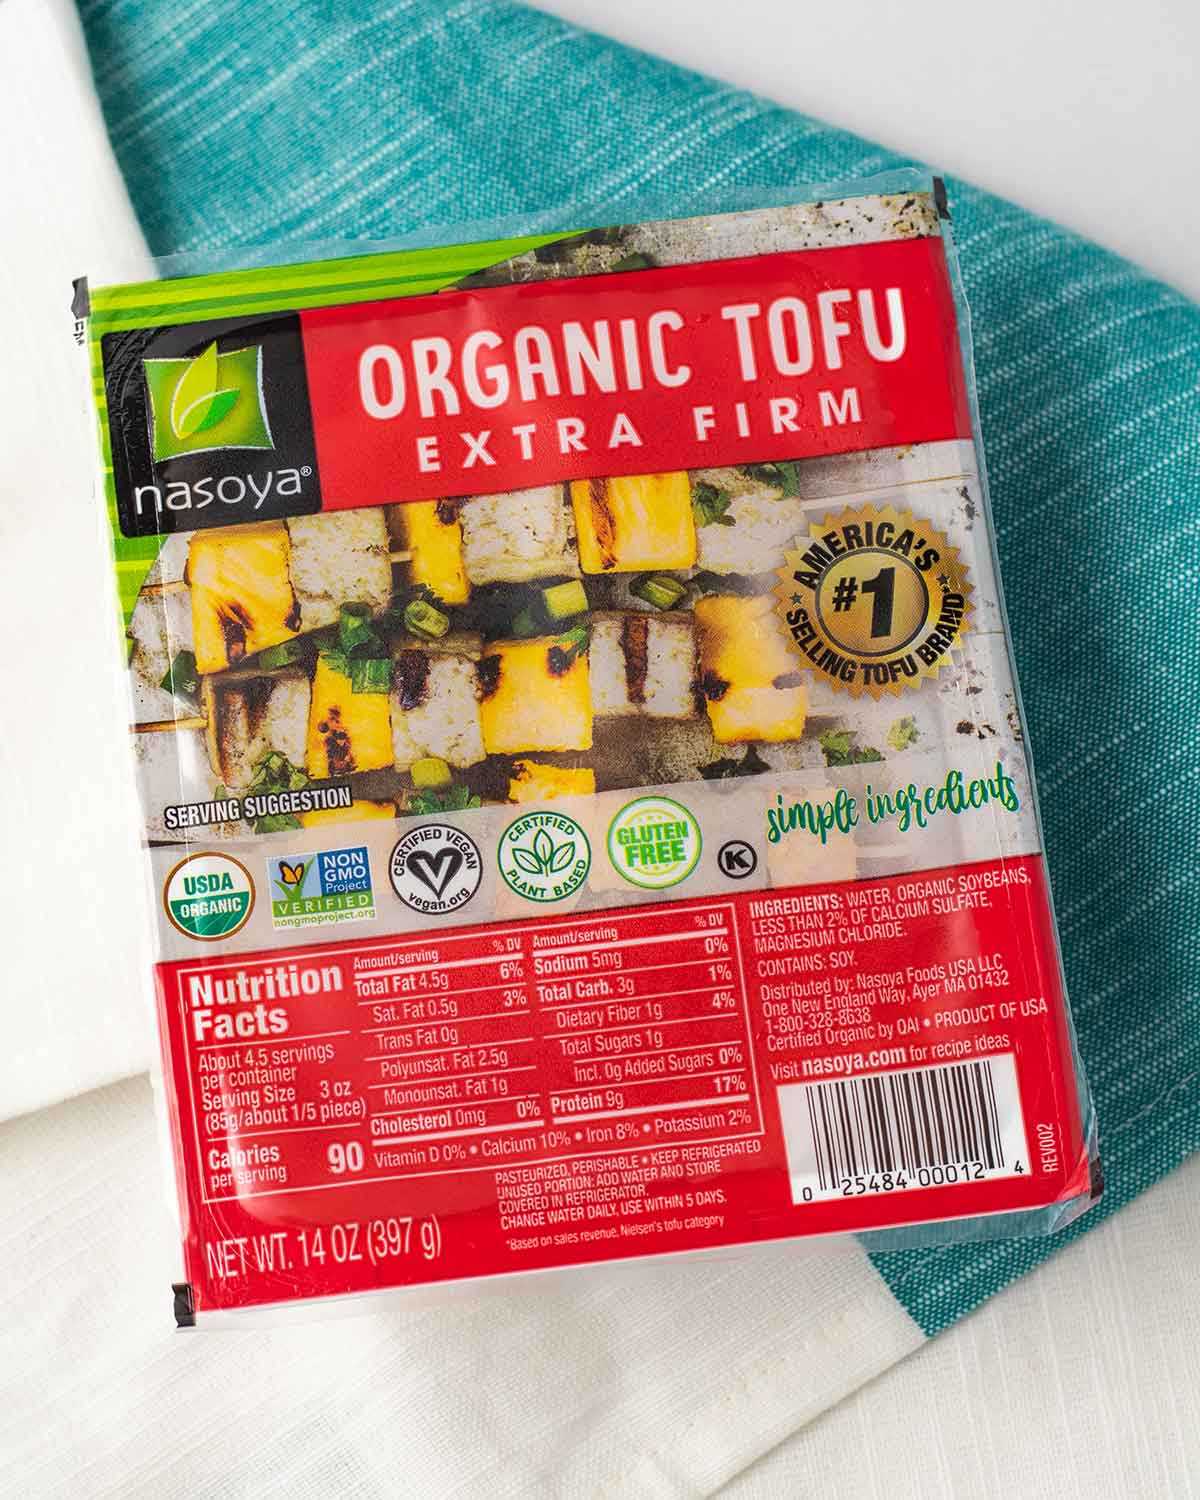 A package of Nasoya organic extra firm tofu.